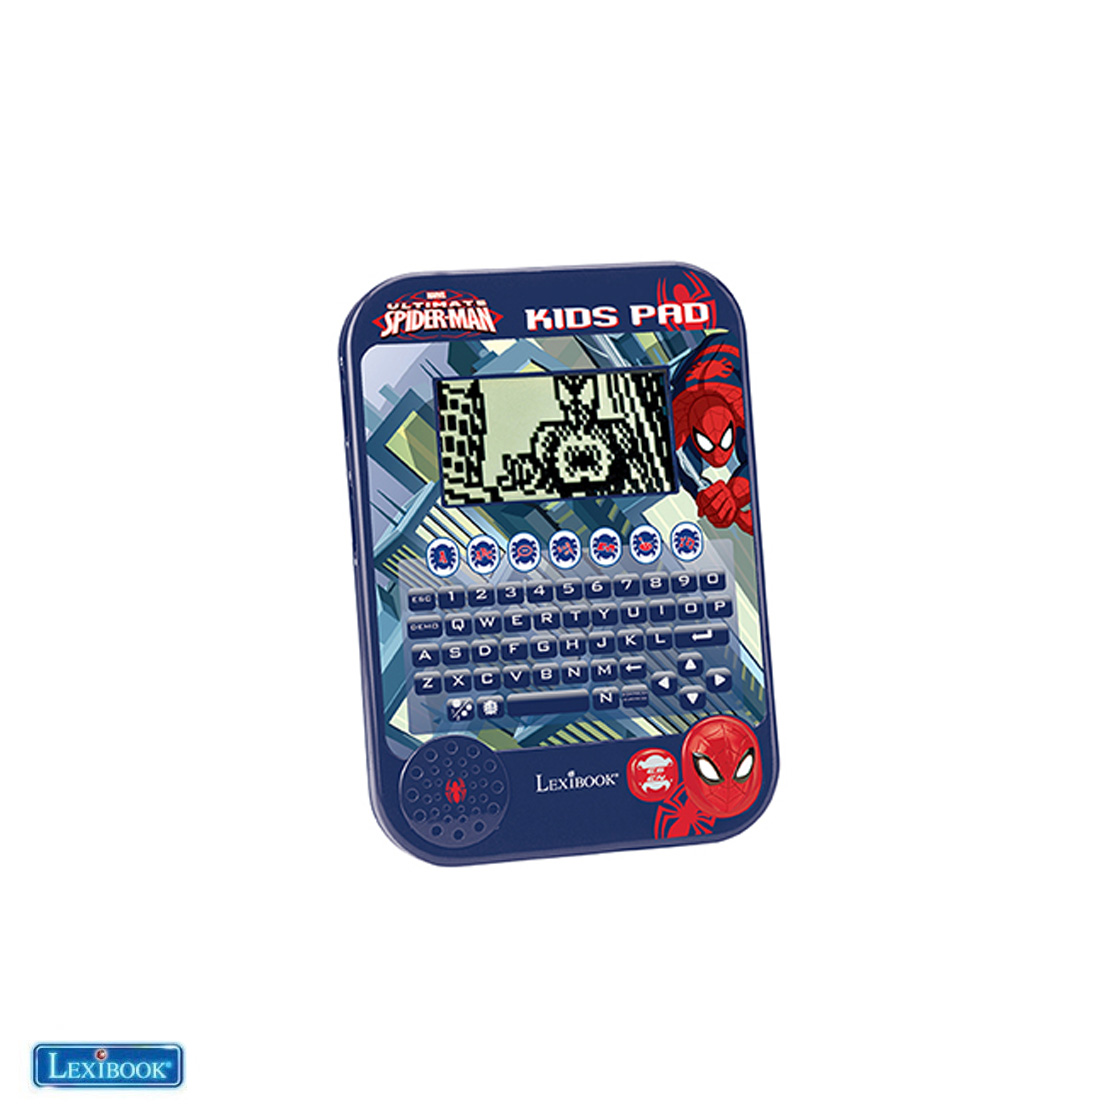 Spider-Man Juniors Pad_product